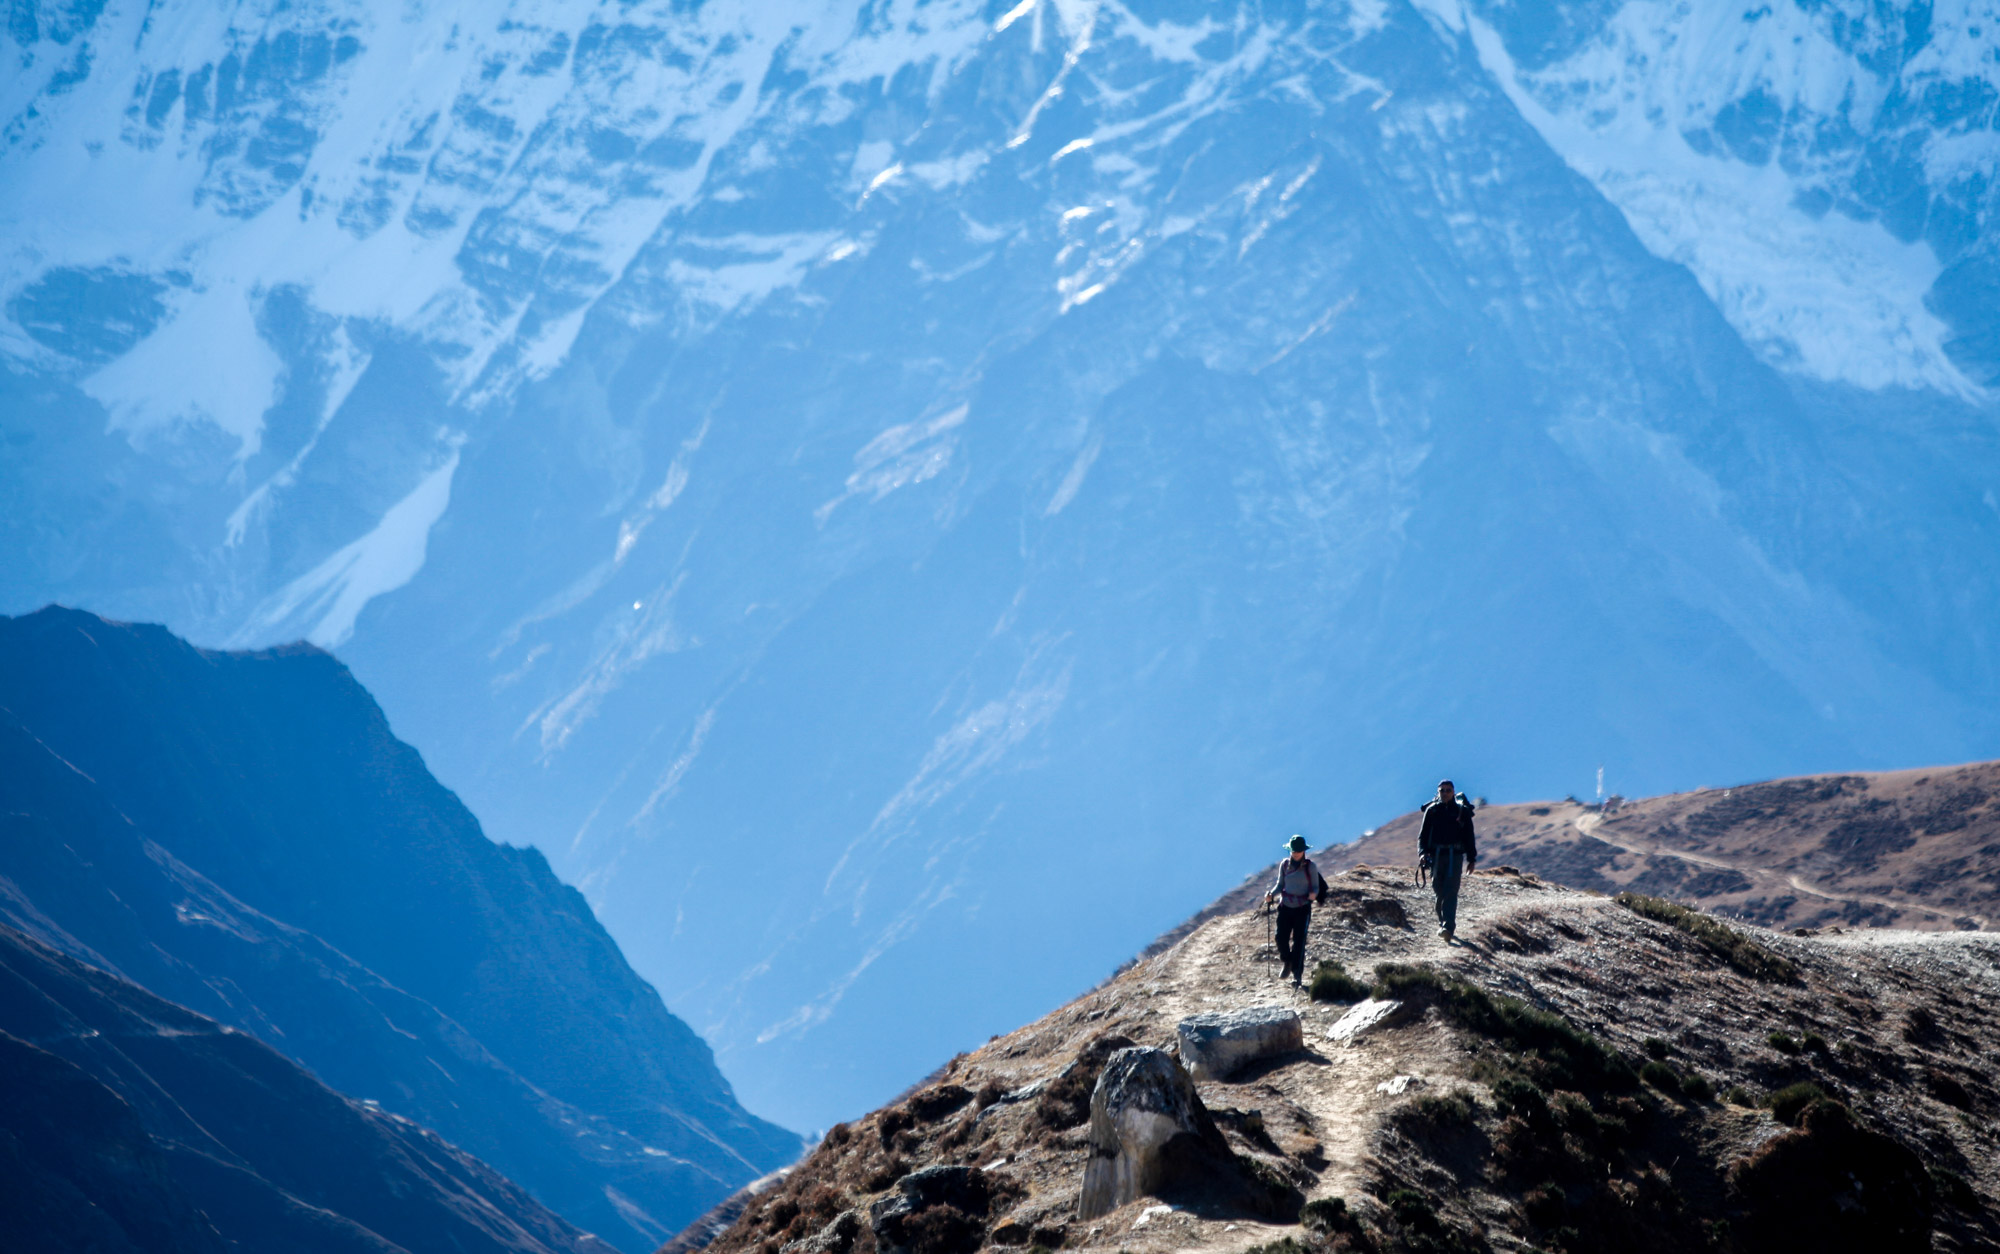 Two Trekkers in Himalayas on Everest Basecamp Trek | Travel Photography | Trekking